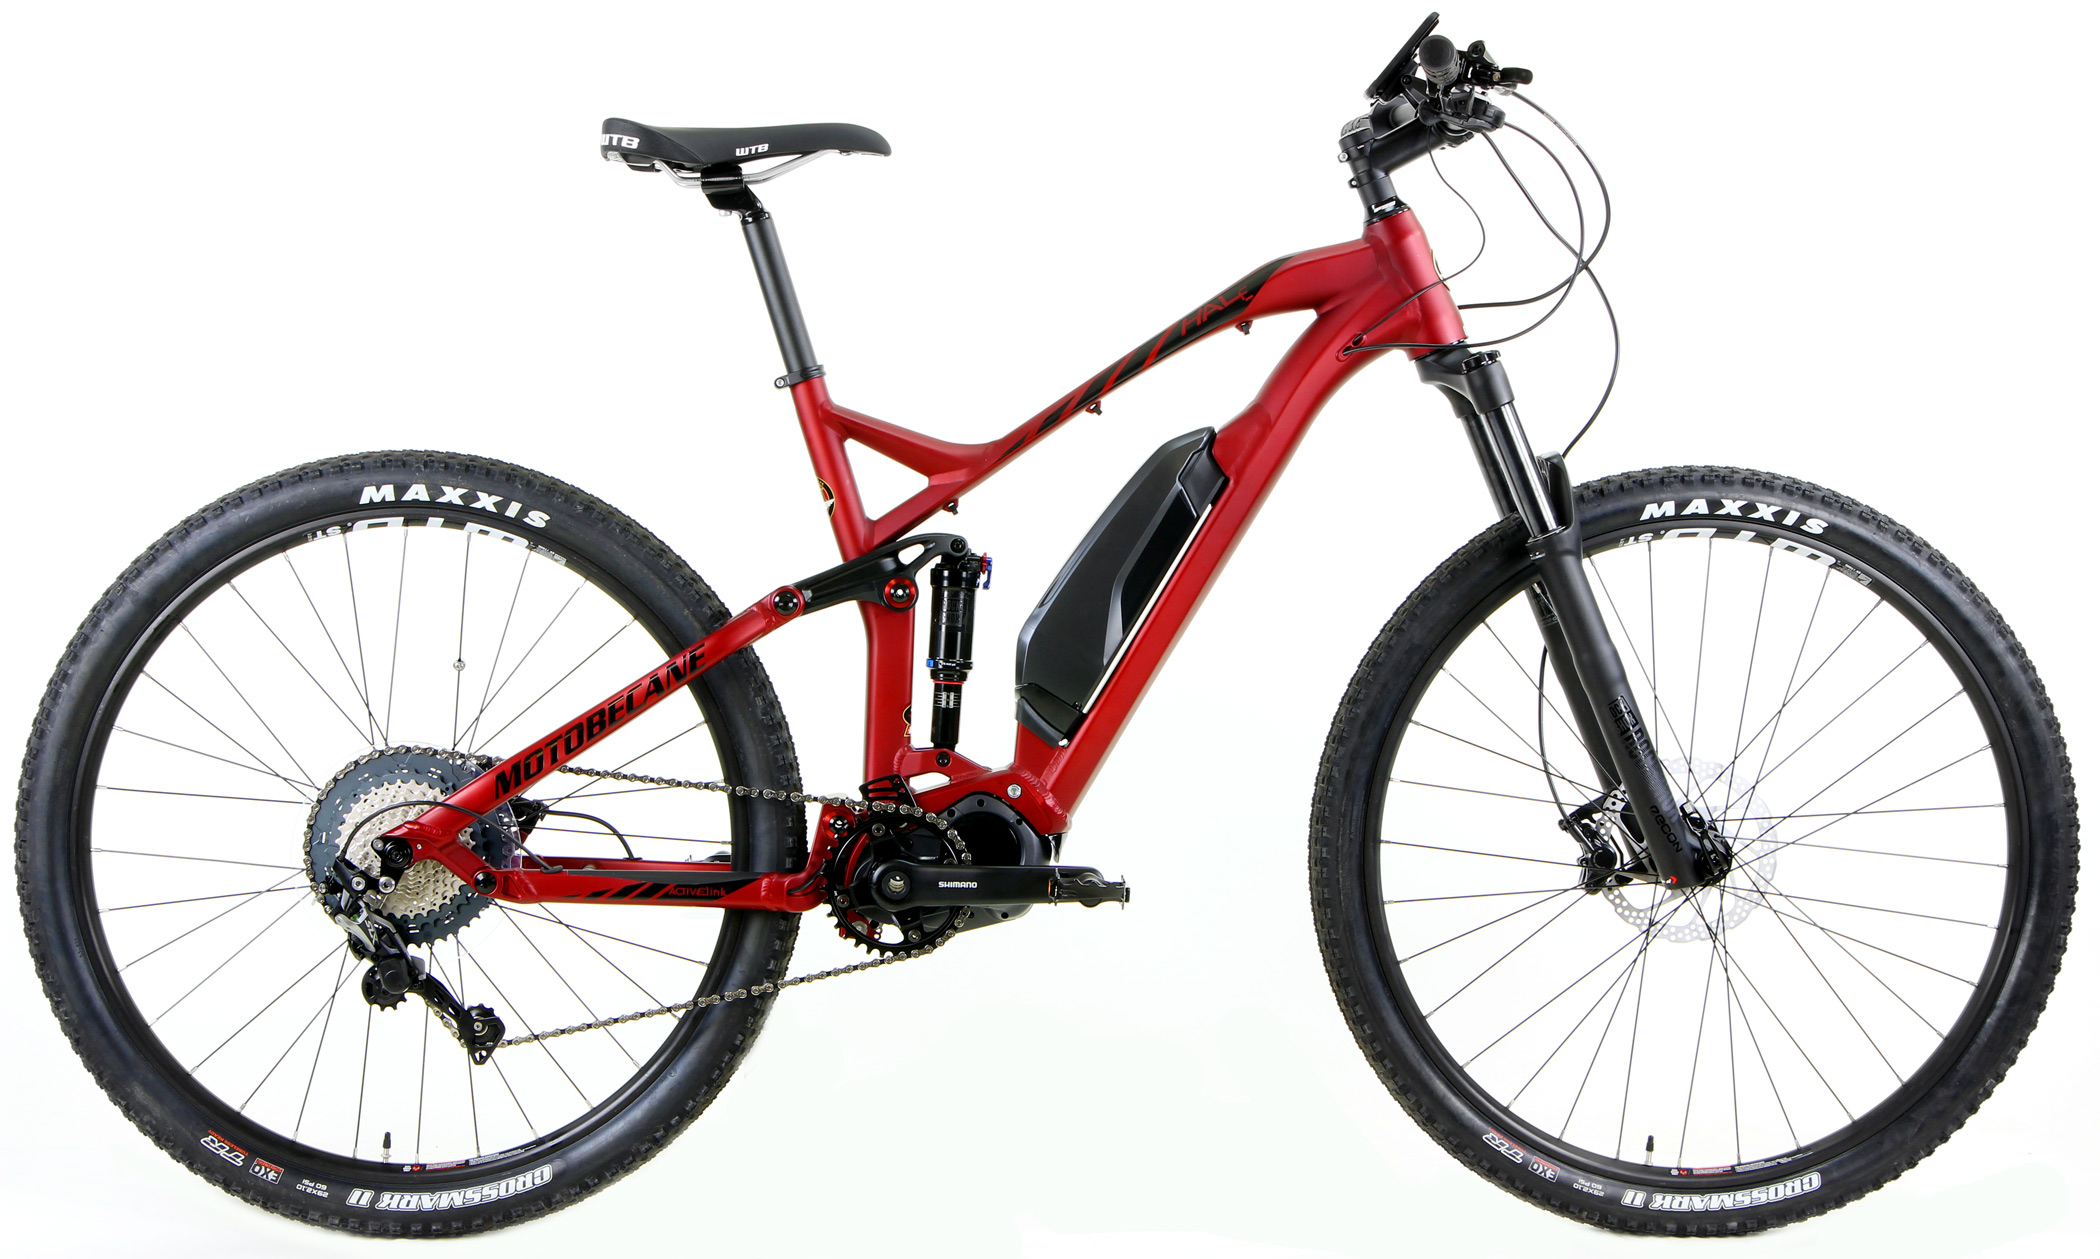 Bikes Motobecane HAL e29 Electric Mountain Bike Image